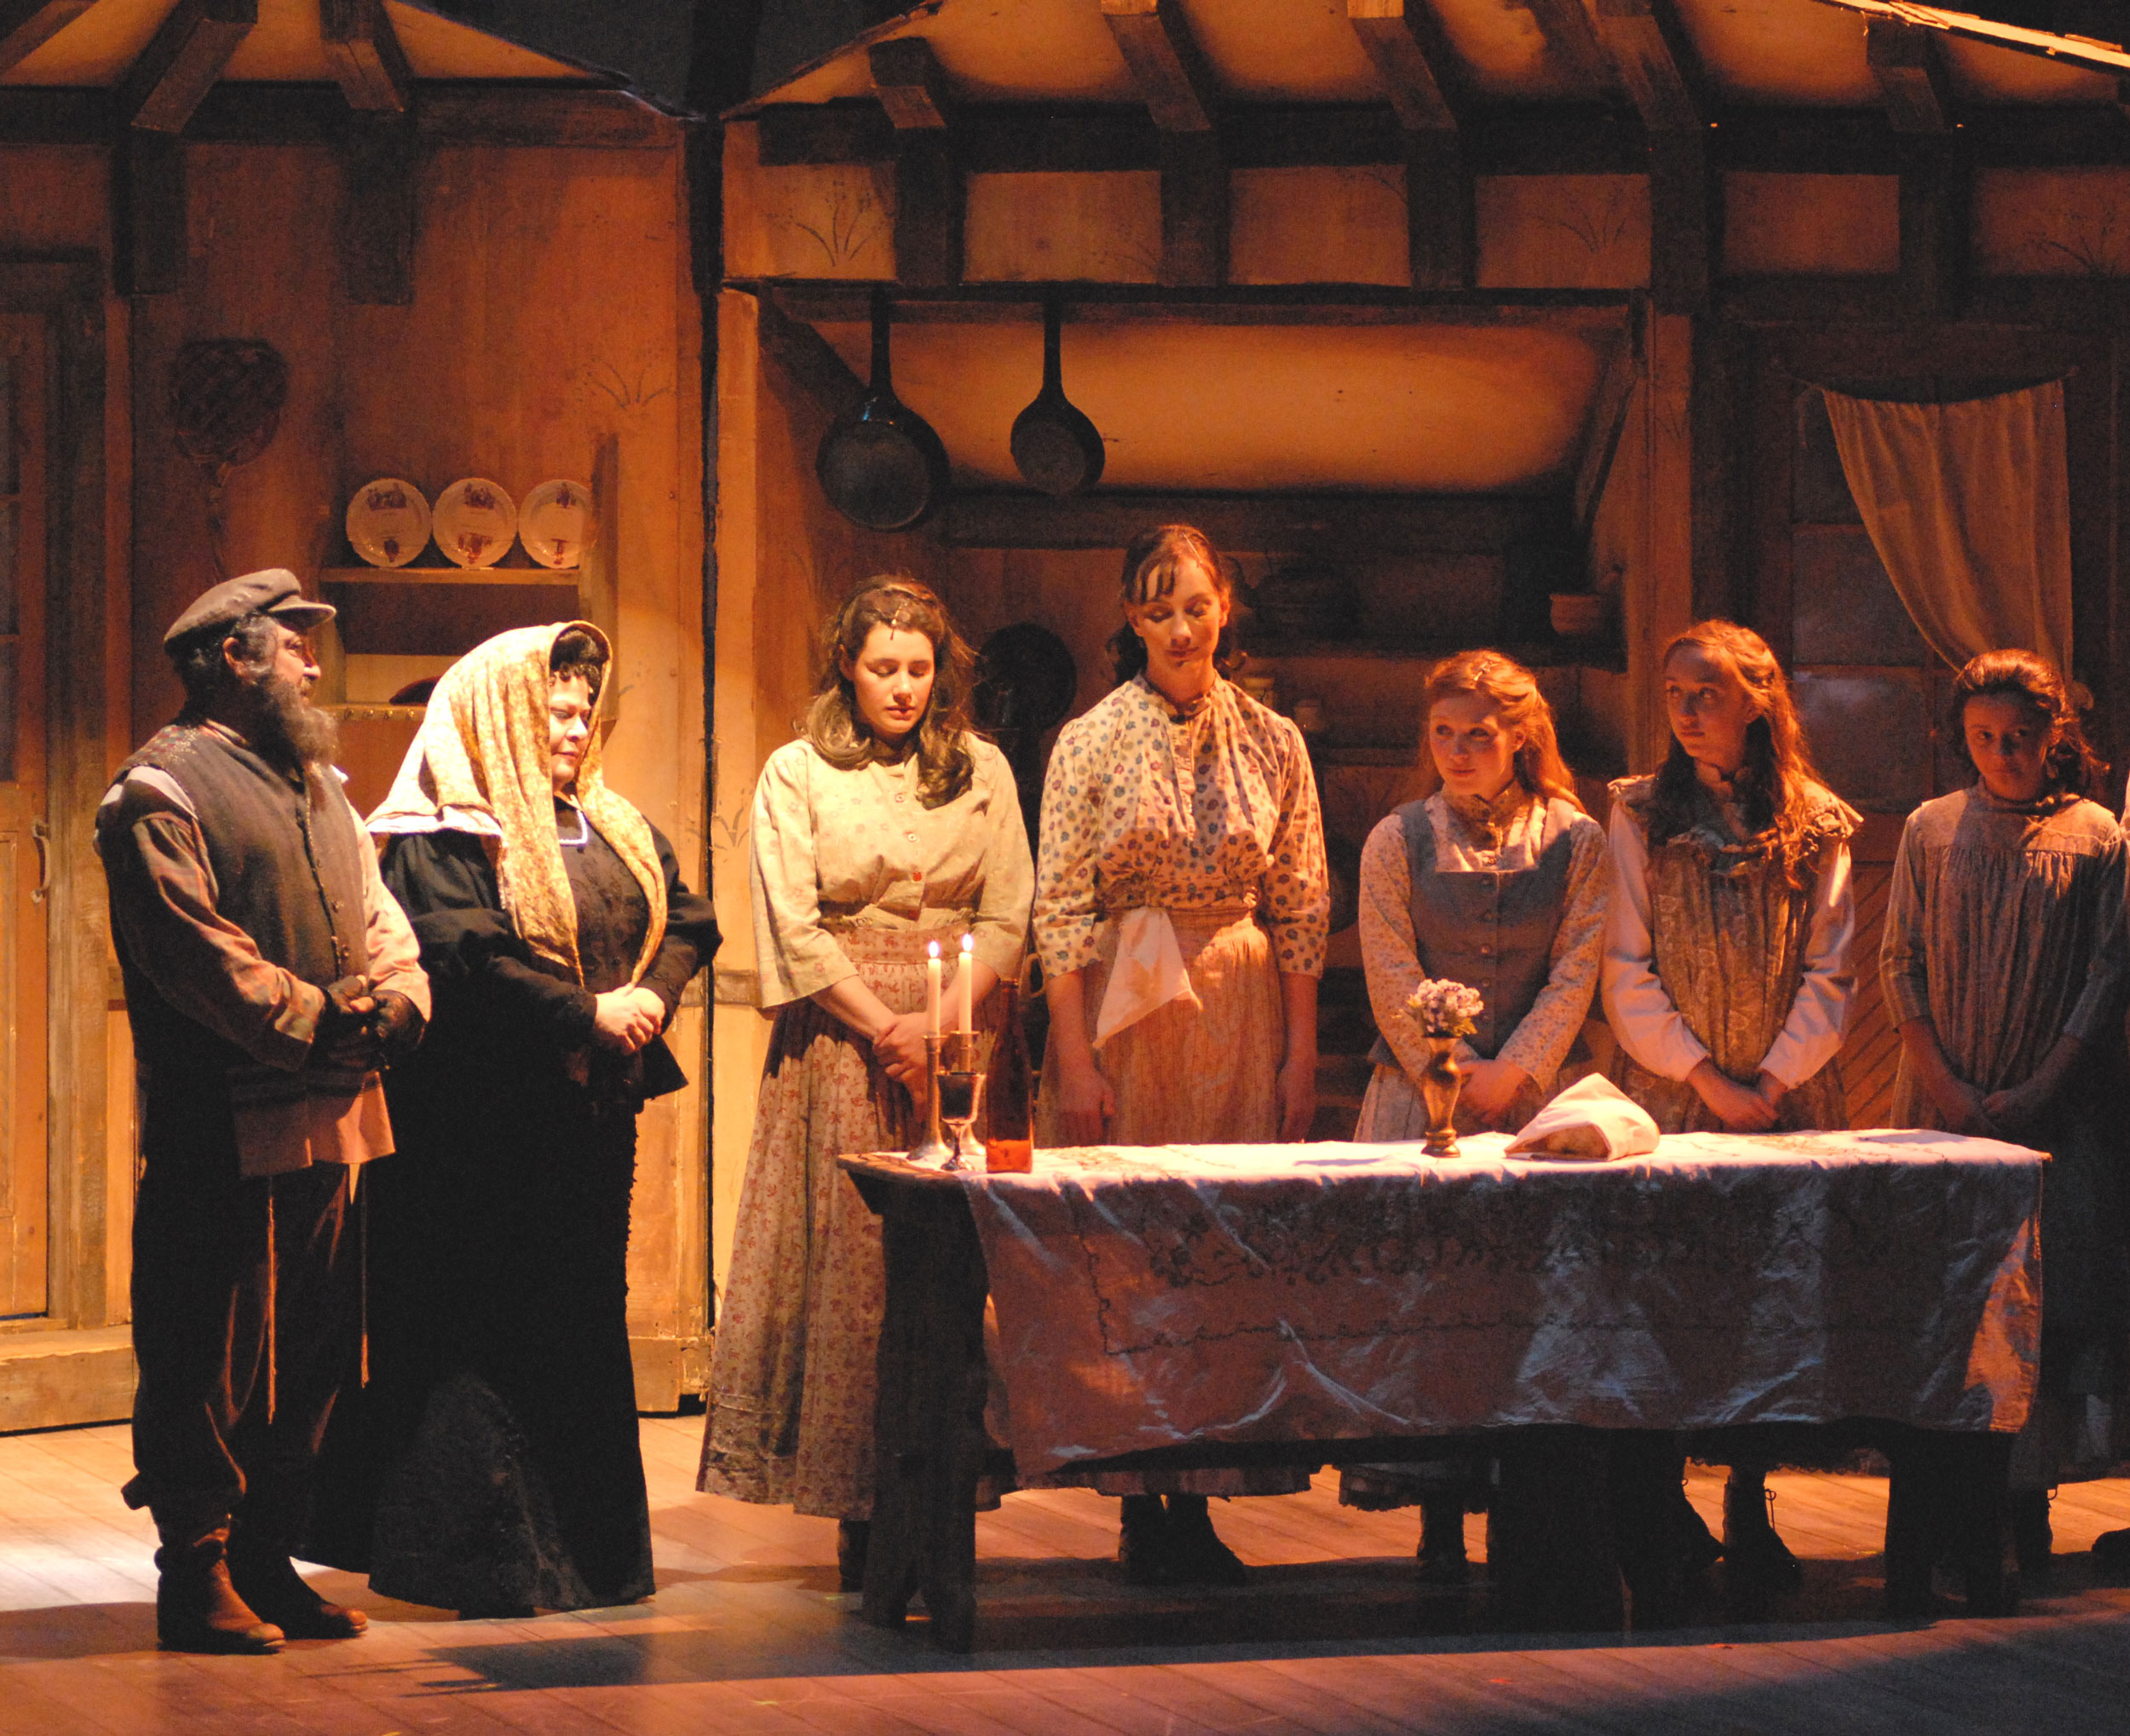 Eddie-Mekka-&-Sally-Struthers-with-cast-of-Fiddler-on-the-Roof.jpg